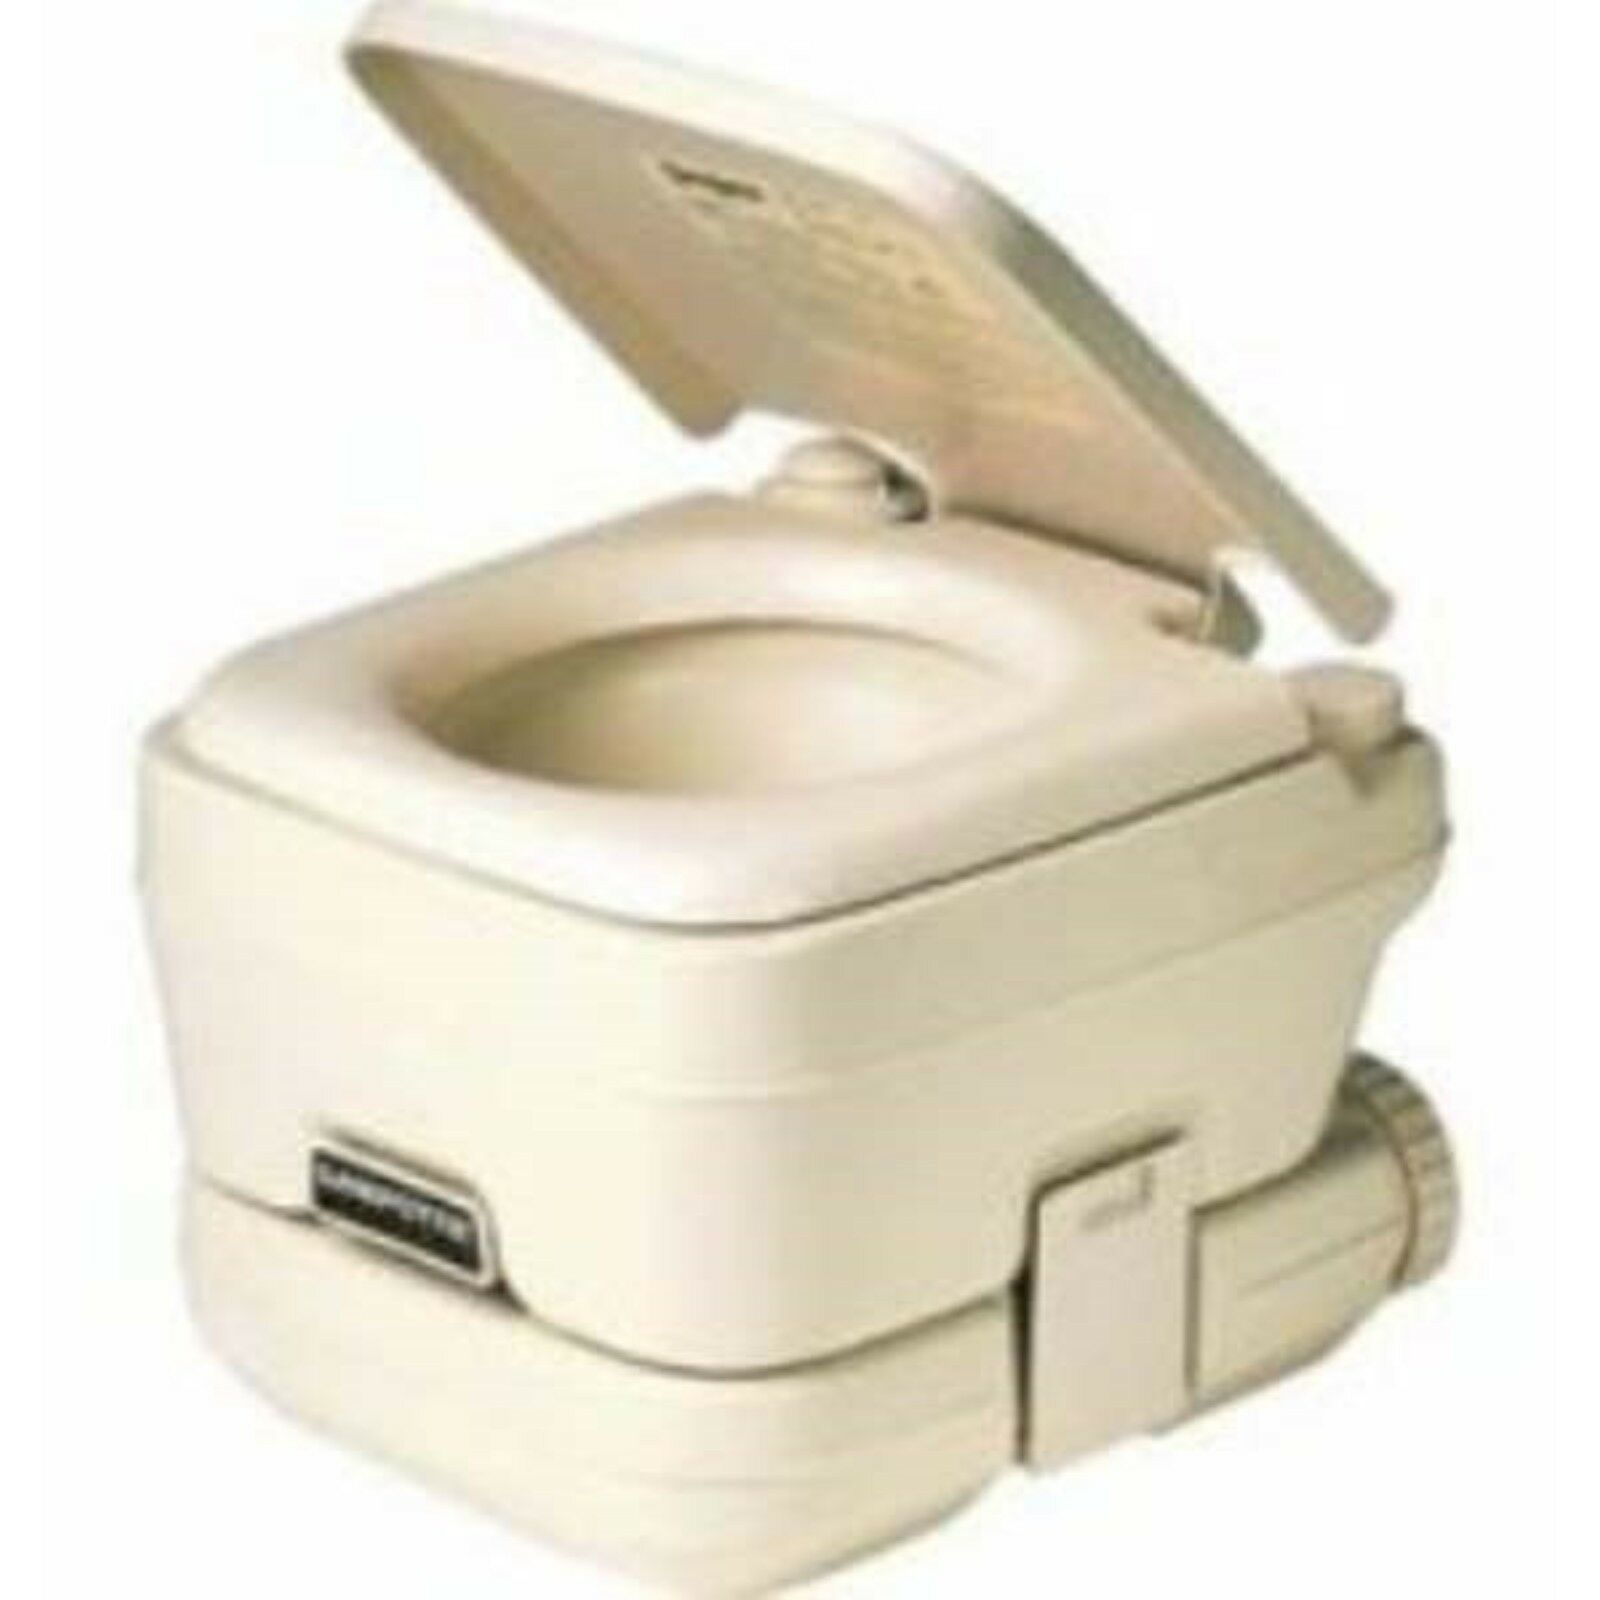 Sealand 311196402 Gallon 964 MSD Portable Toilet 2.5 Gallon 311196402 ee30e5